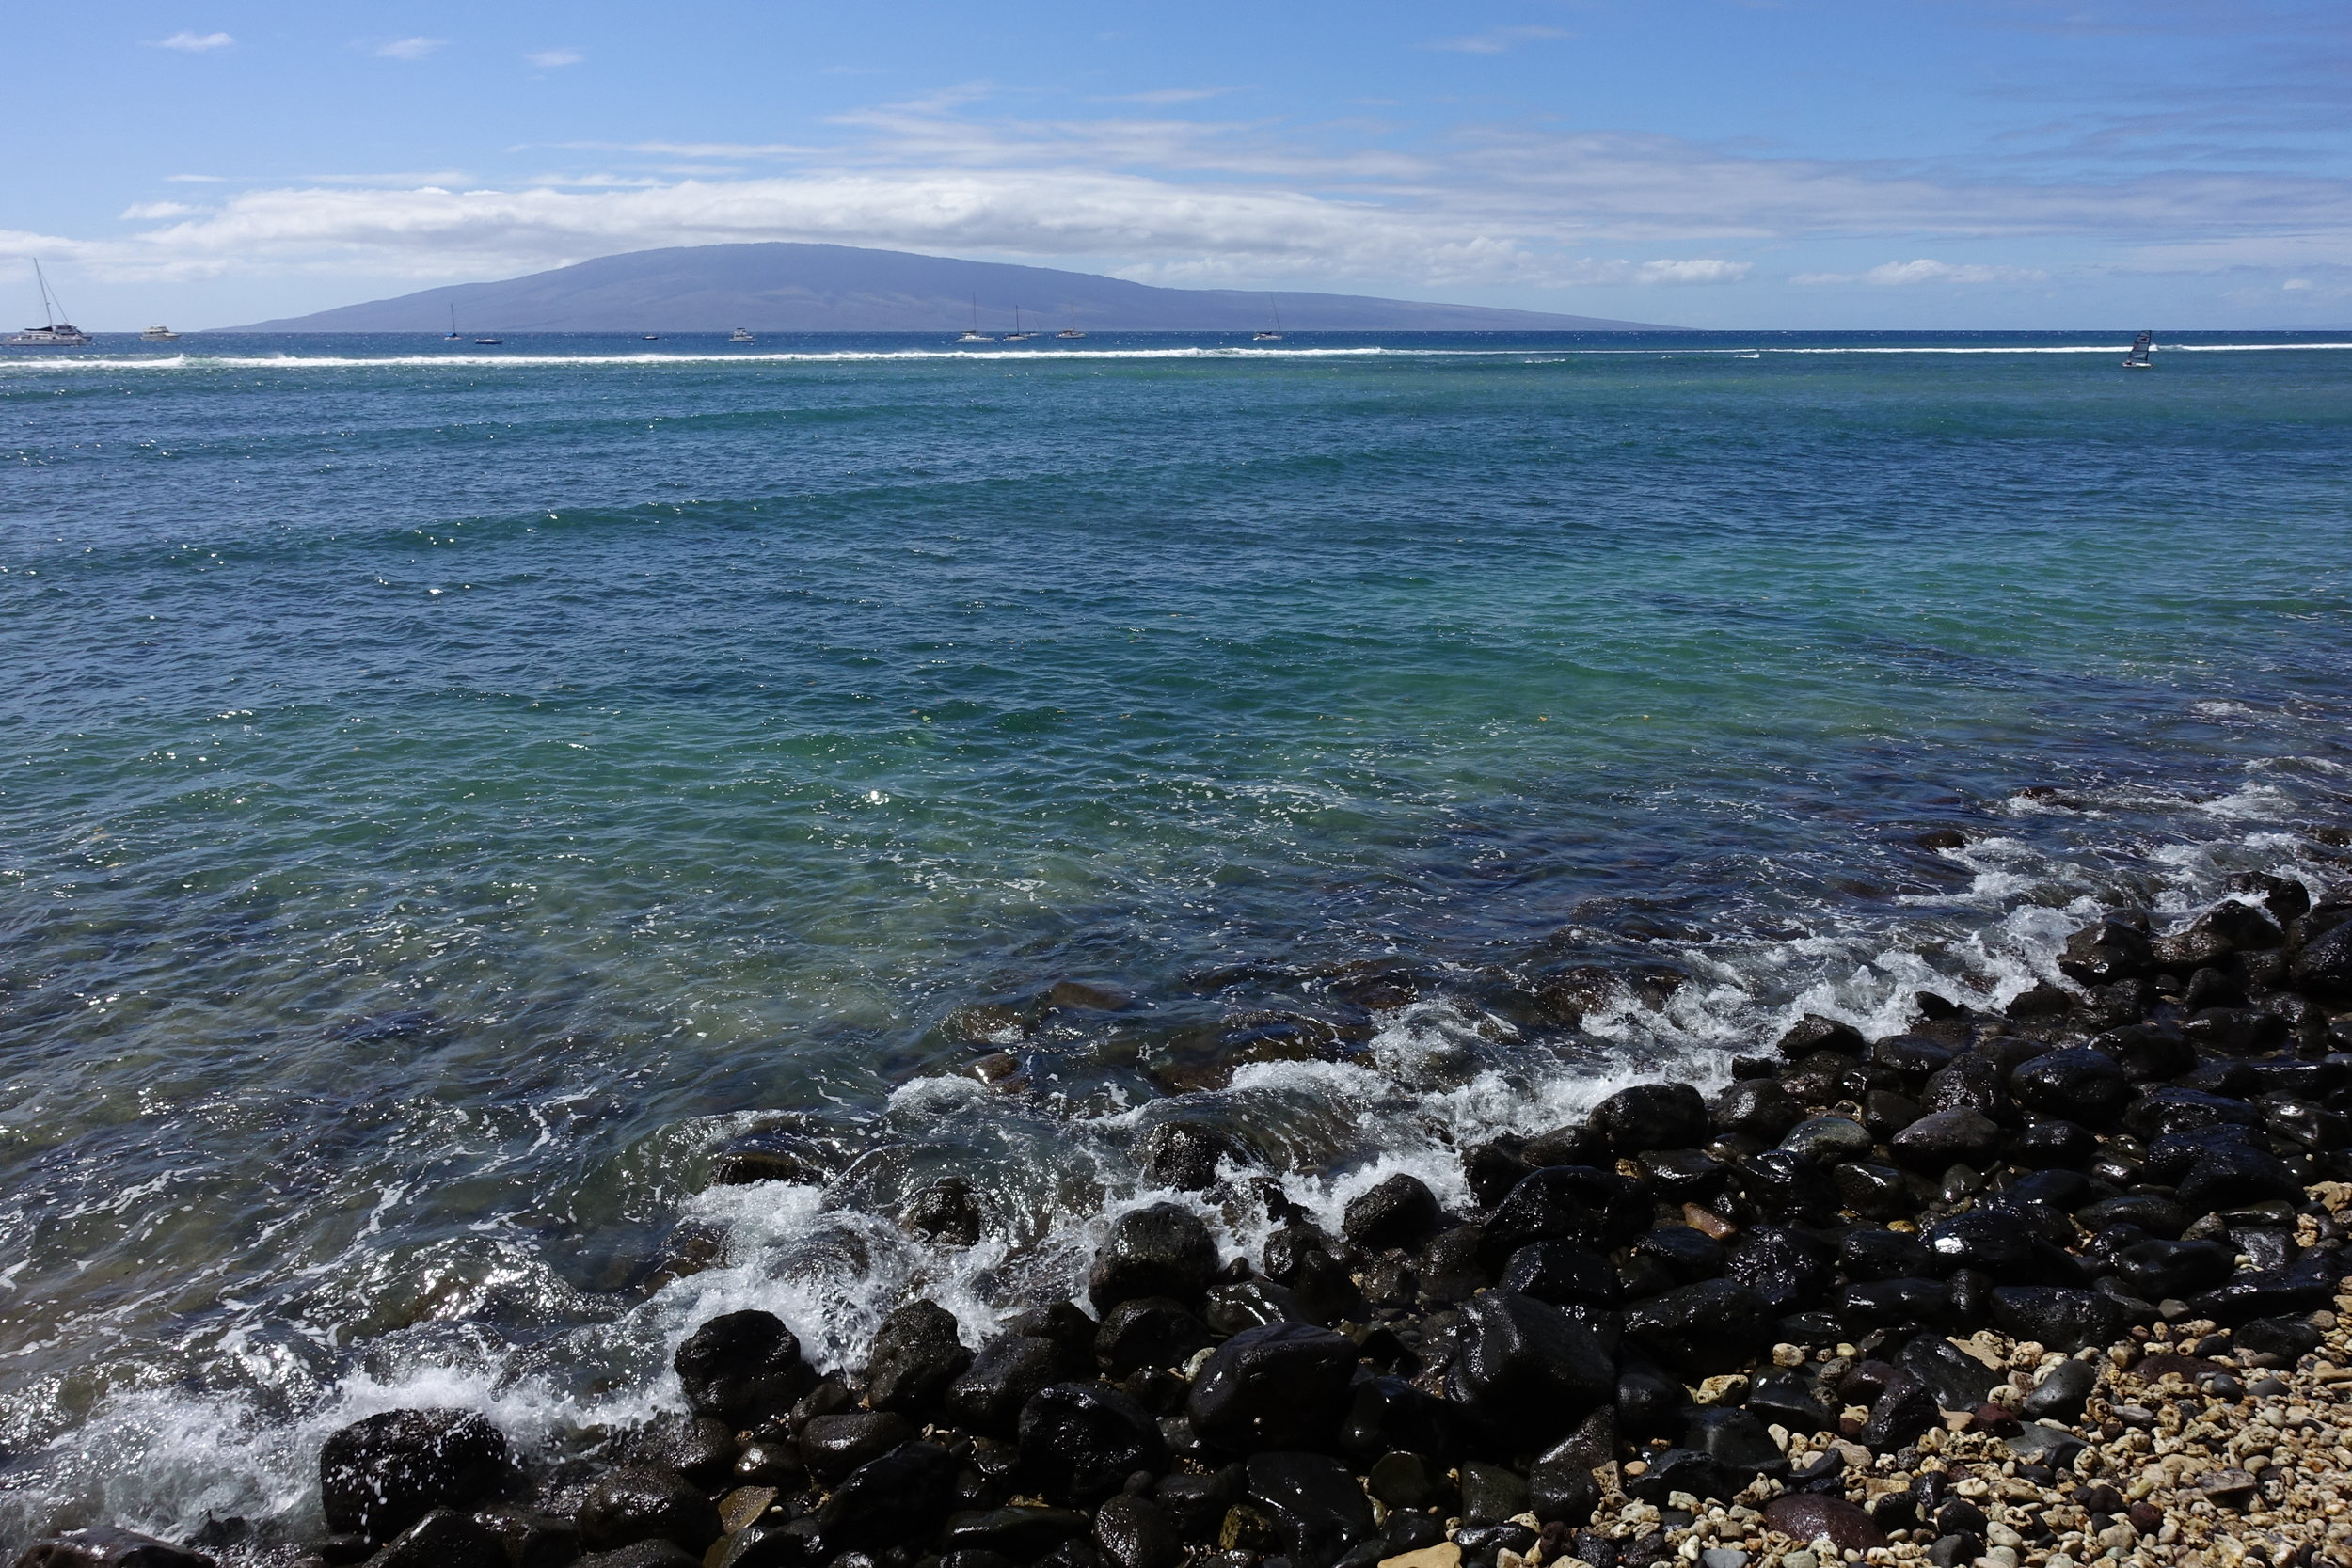 View of Lanaʻi from the west coast of Maui. Credit: Paula Moehlenkamp